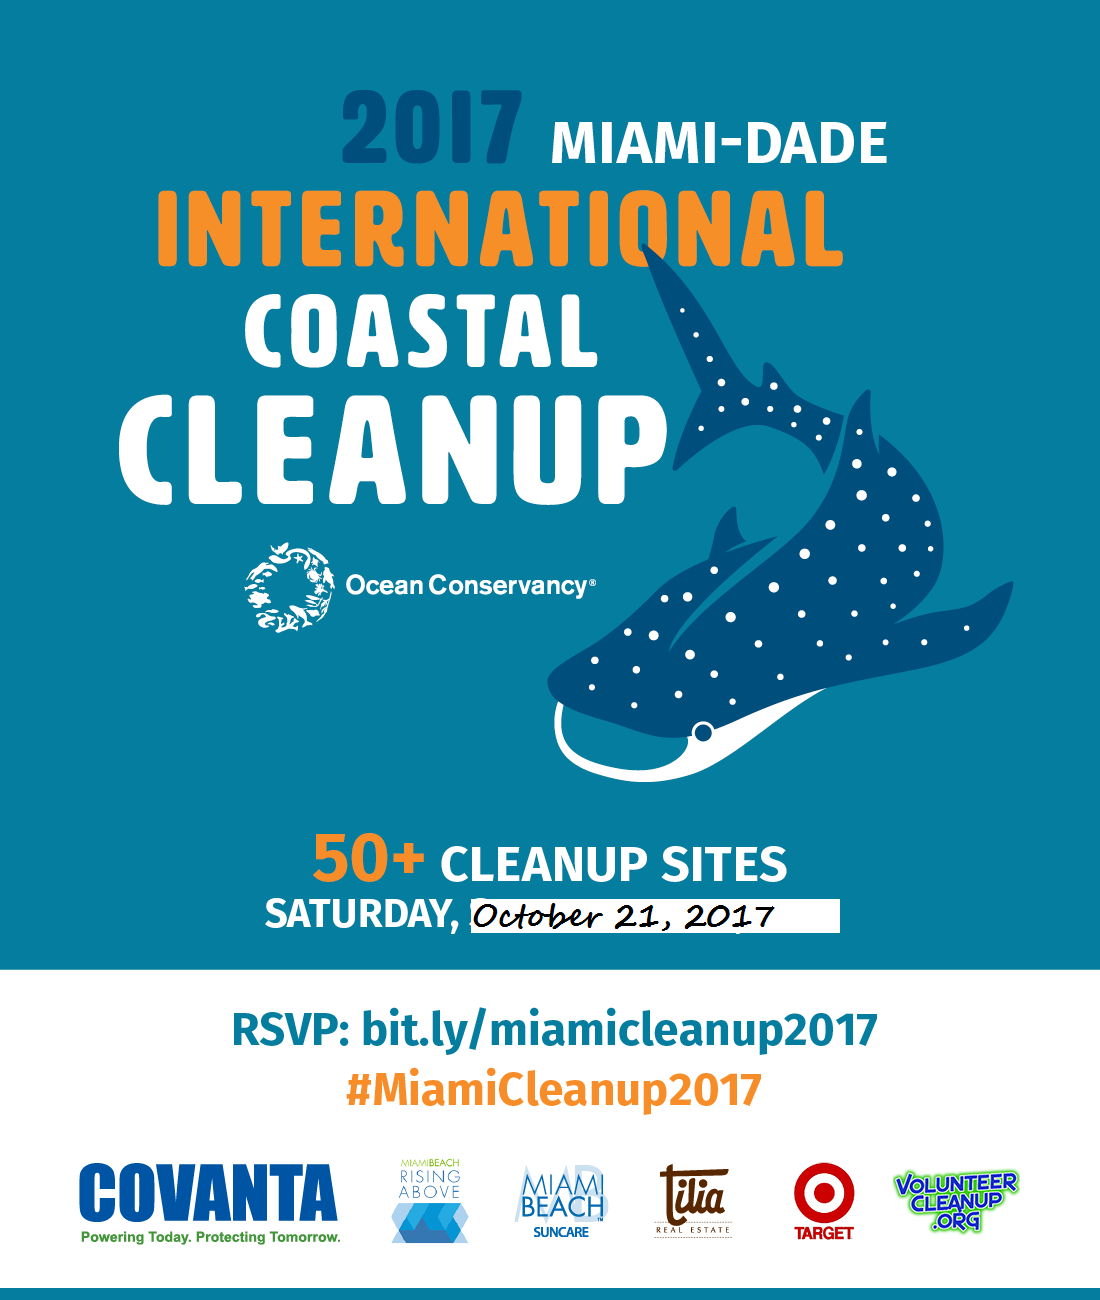 intl_coastal_cleanup_revised.png